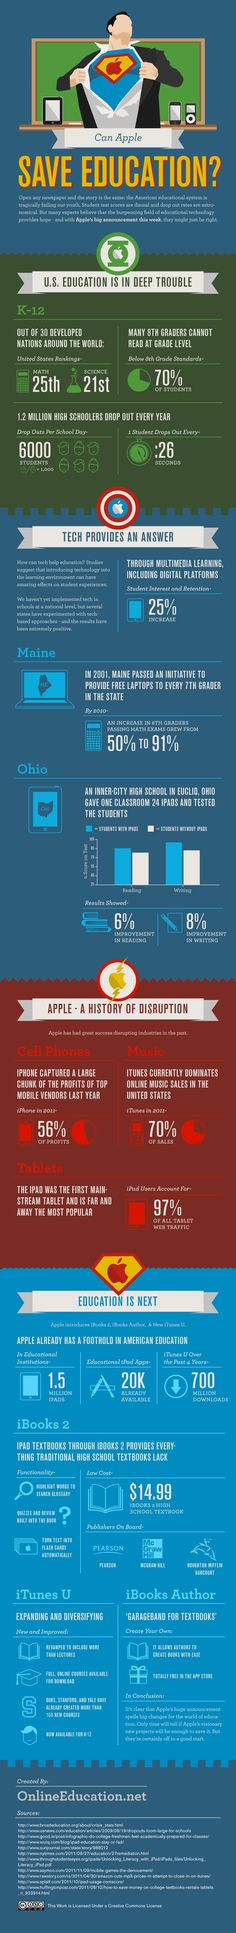 Will Apple Be Able To Save The Education System [Infographic]